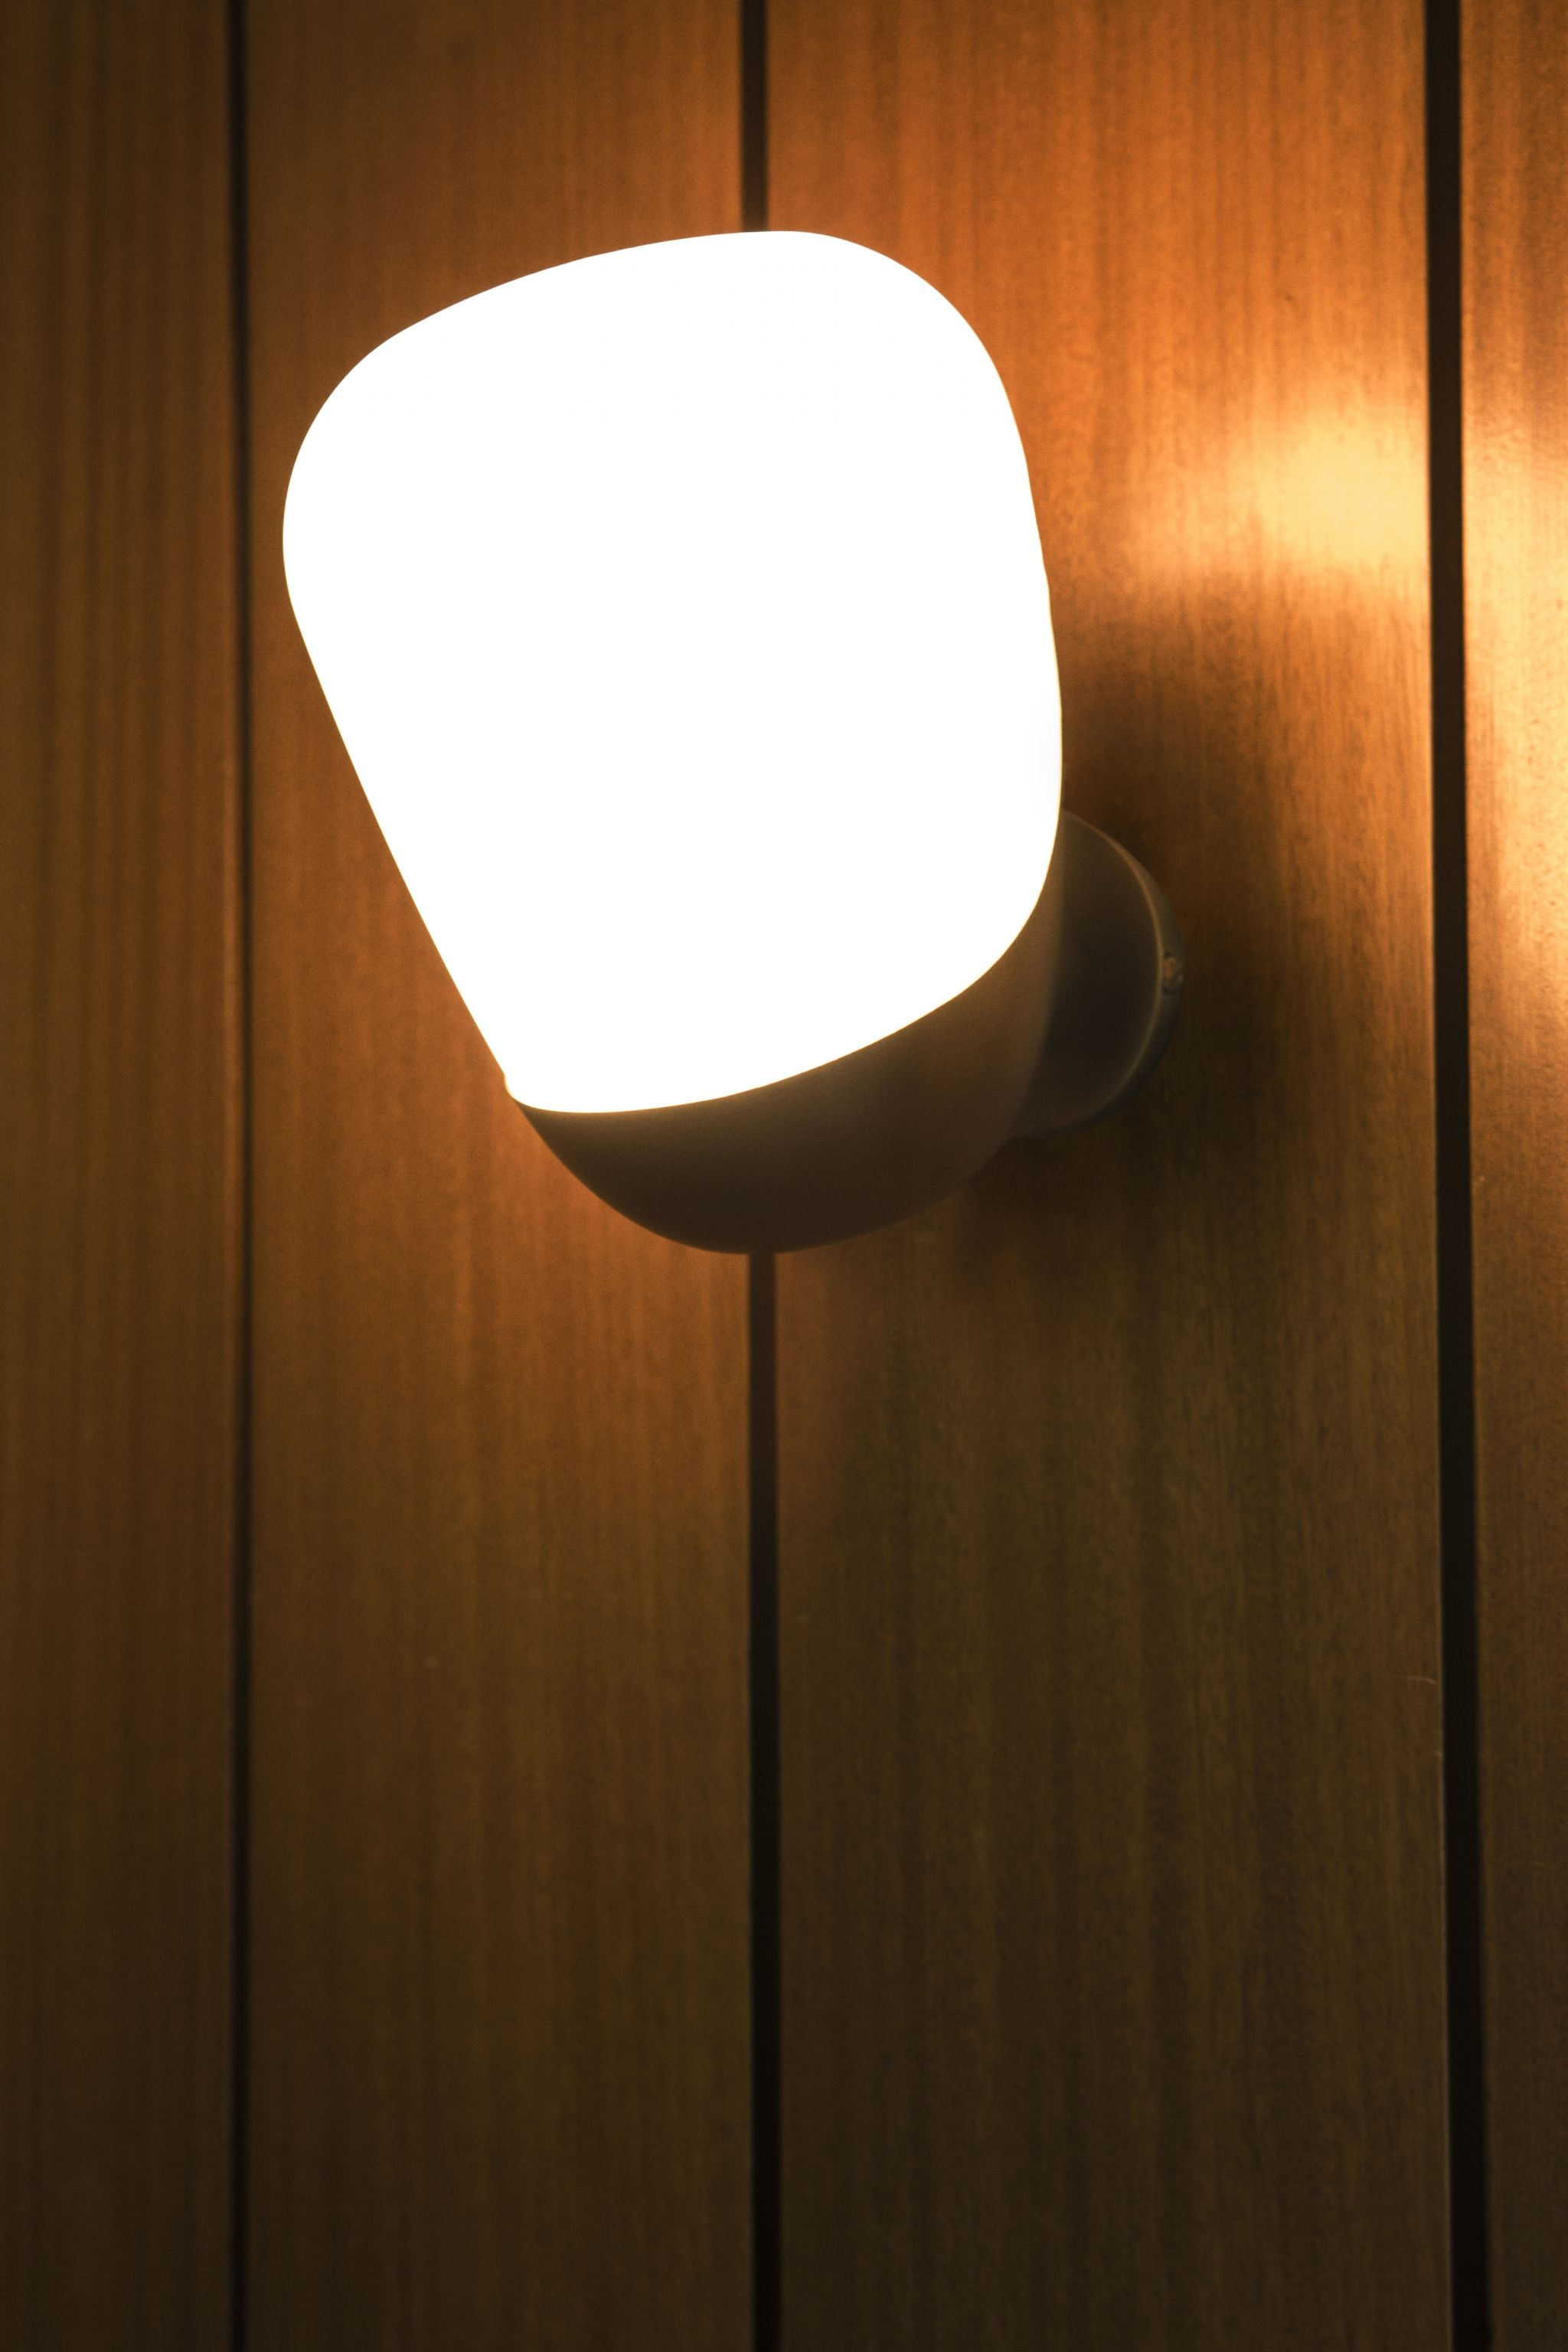 indirect wall lighting. AARHUS Wall Lamp Designed By Arne Jacobsen And Erik Møller In 1946. Indirect Lighting Based On The Traditional Glass Globe H